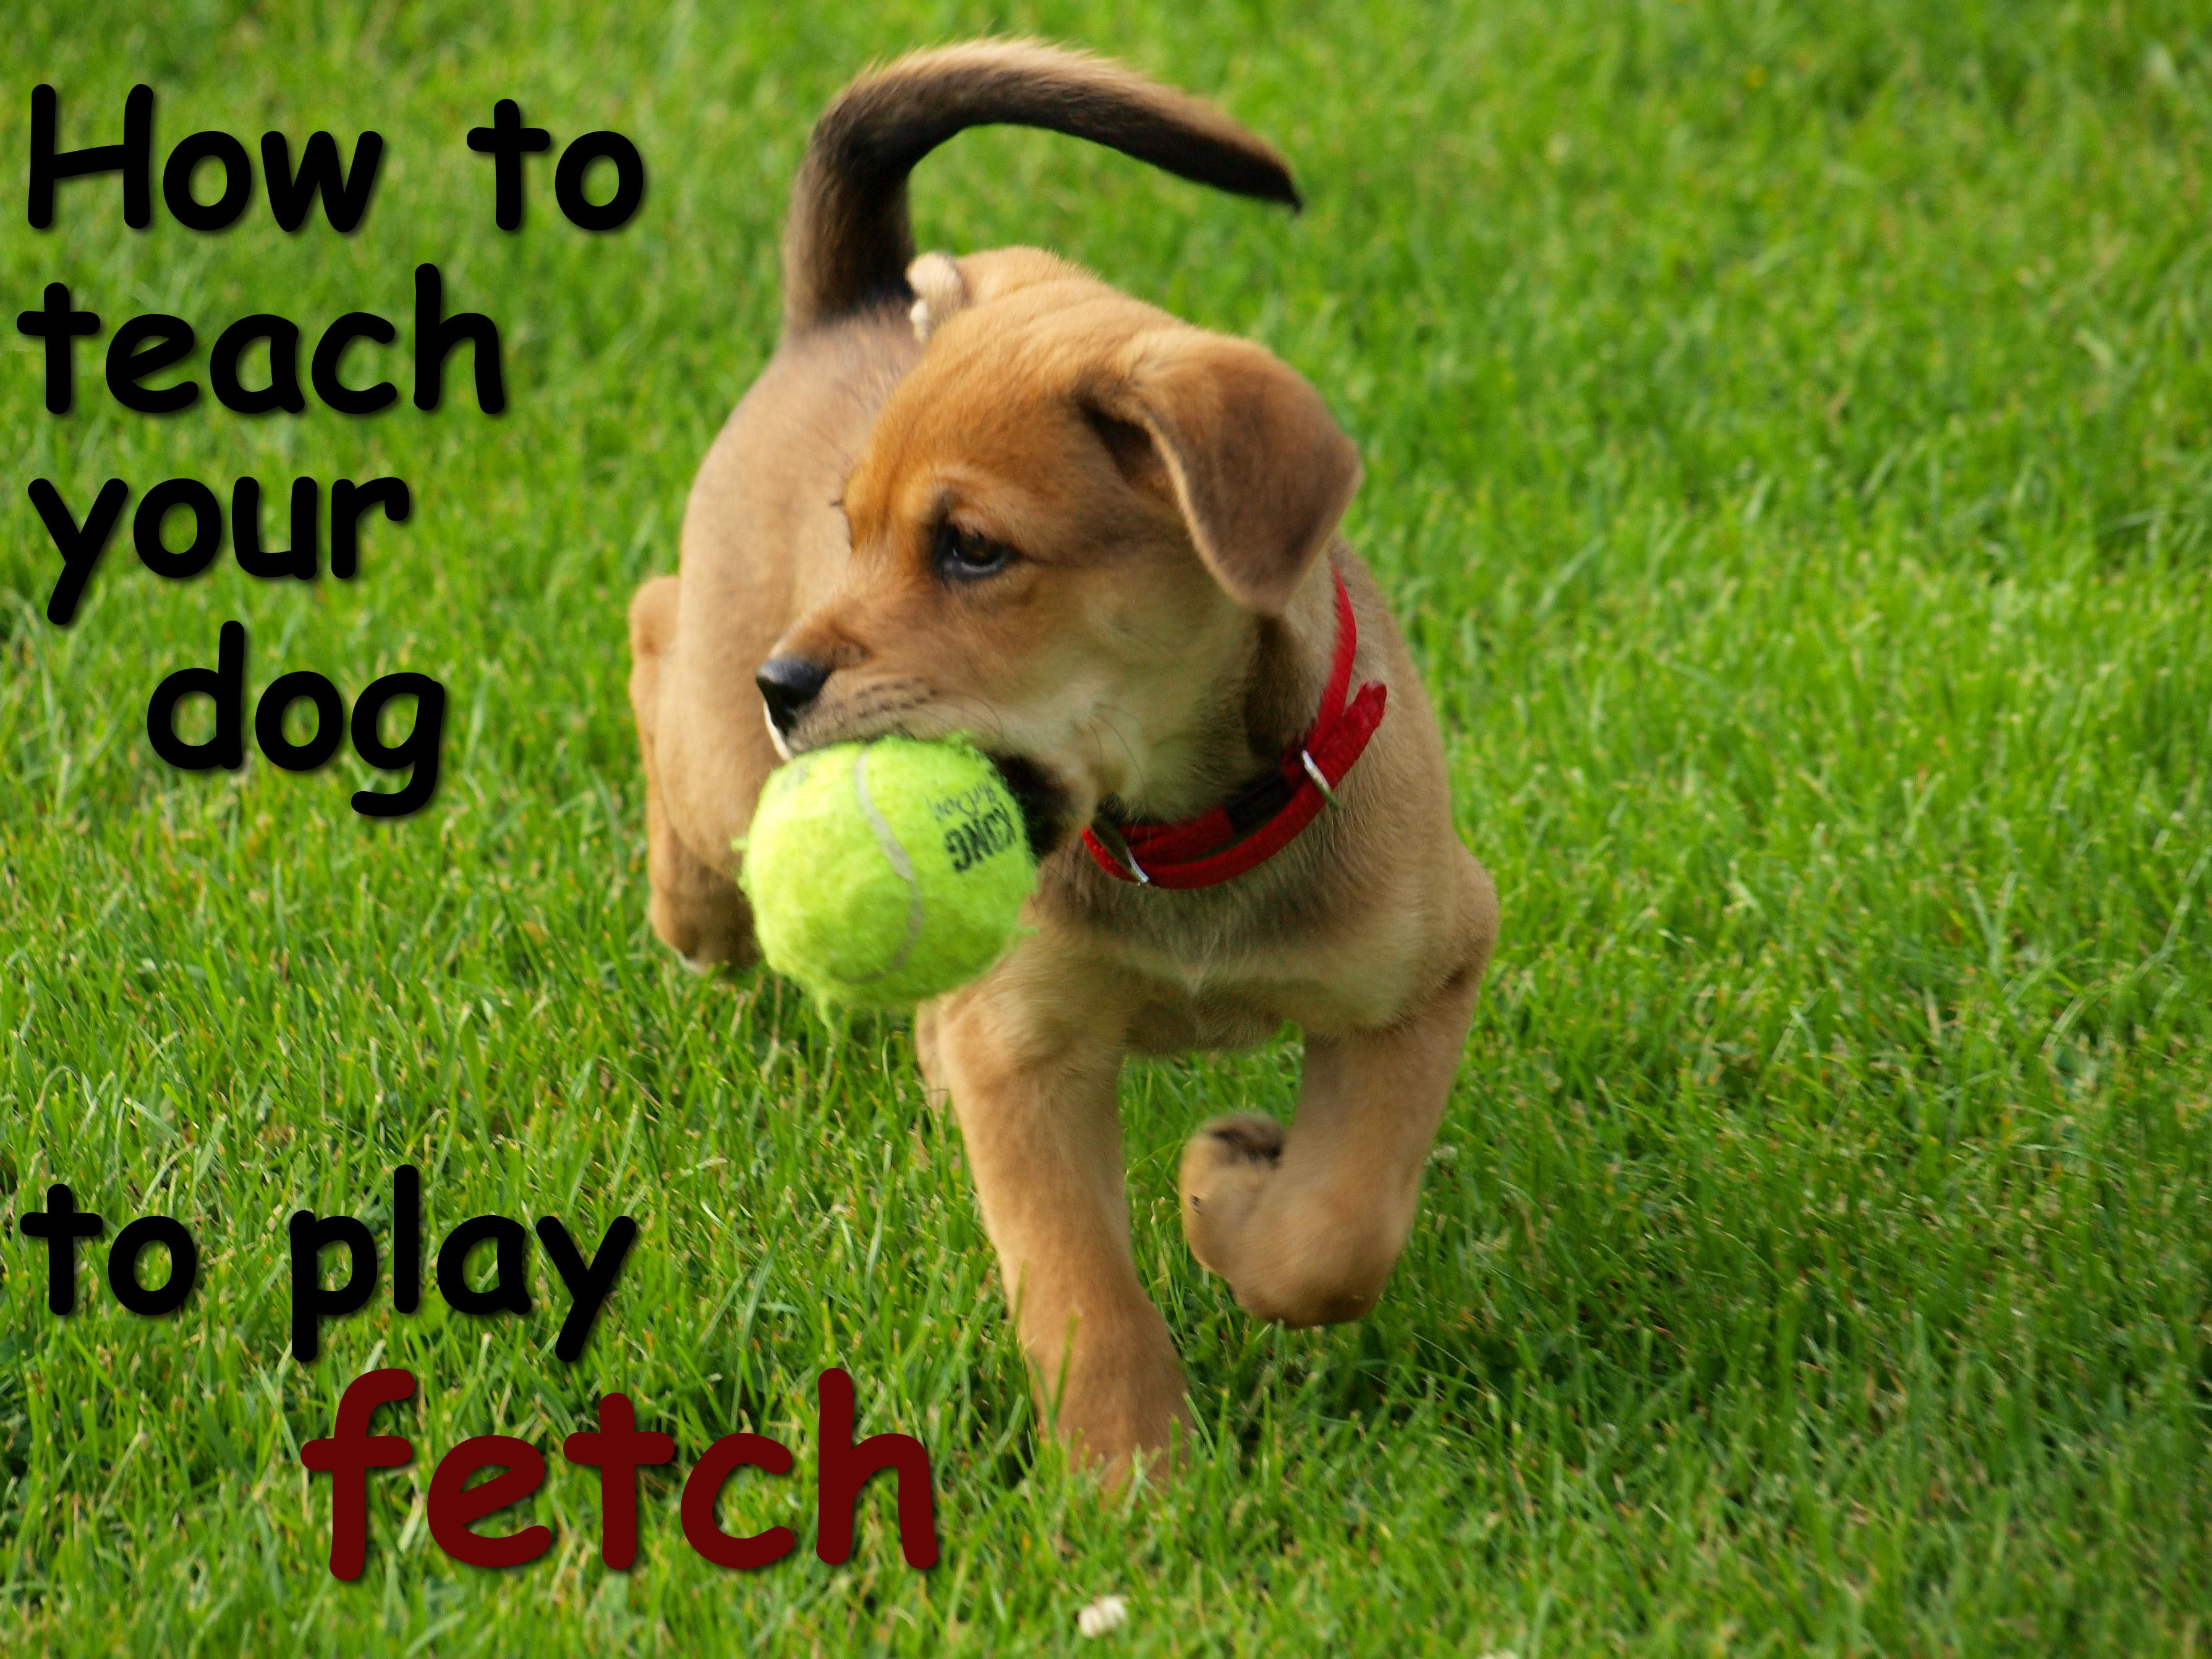 How To Teach Your Dog To Play Fetch Dog Training Training Your